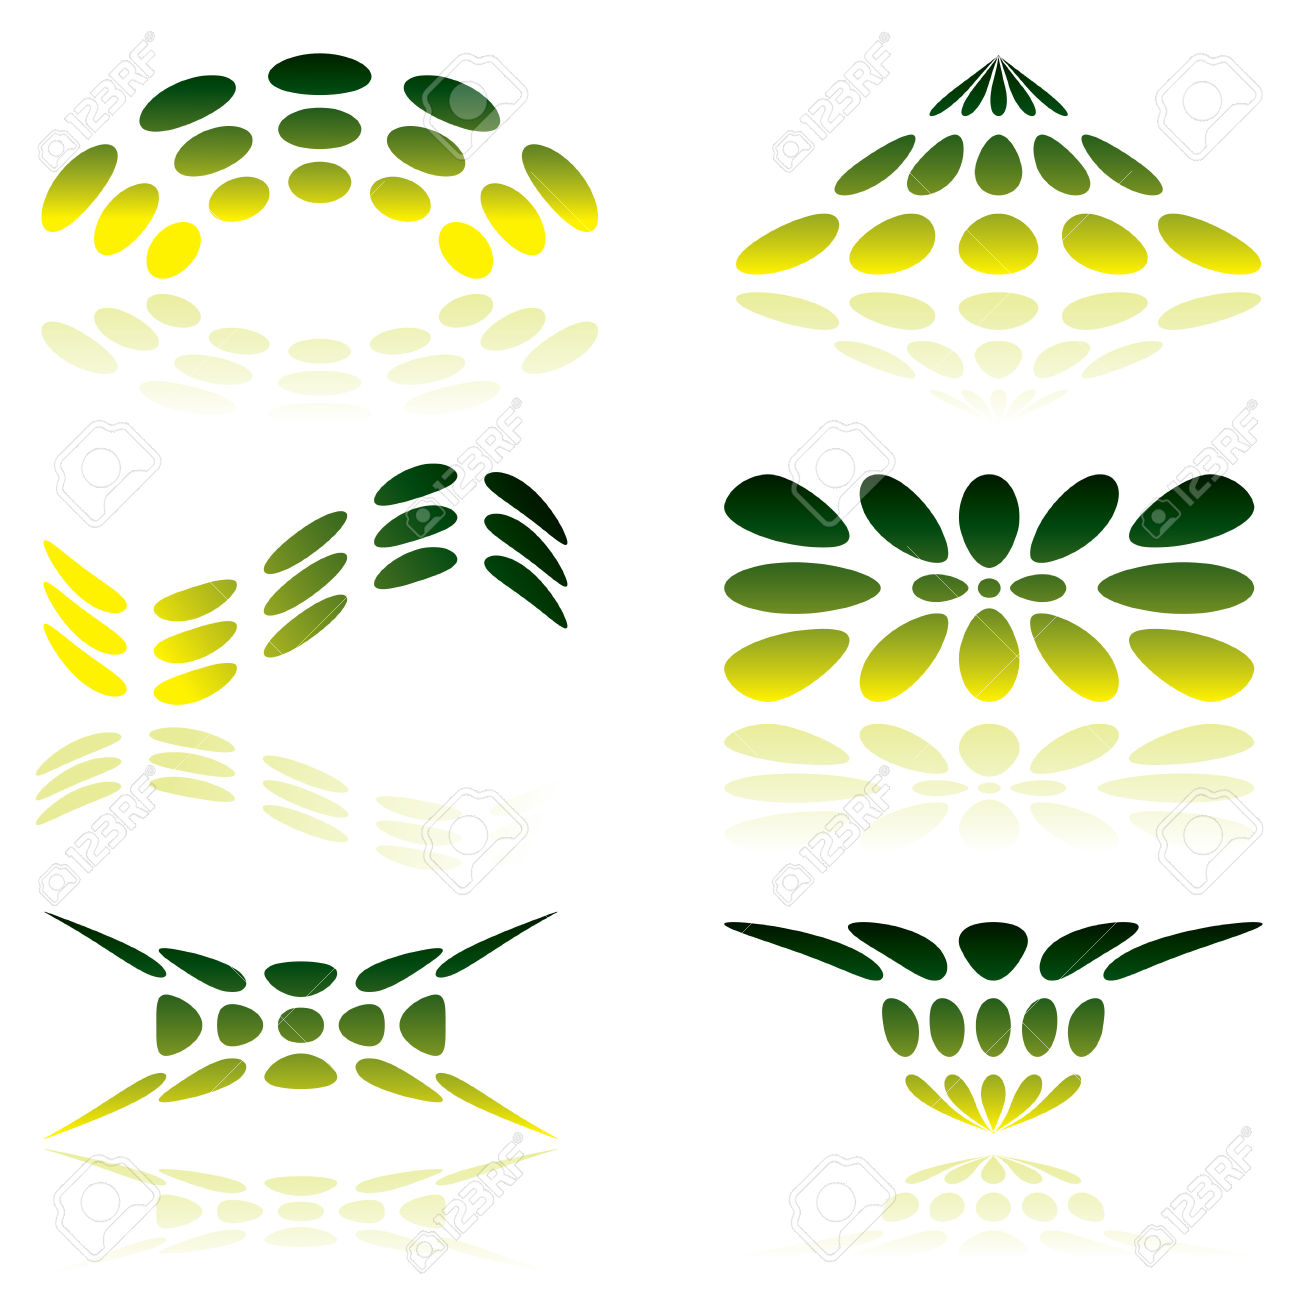 Shades Of Green Illustrated Logo With Reflected Shadow Royalty.